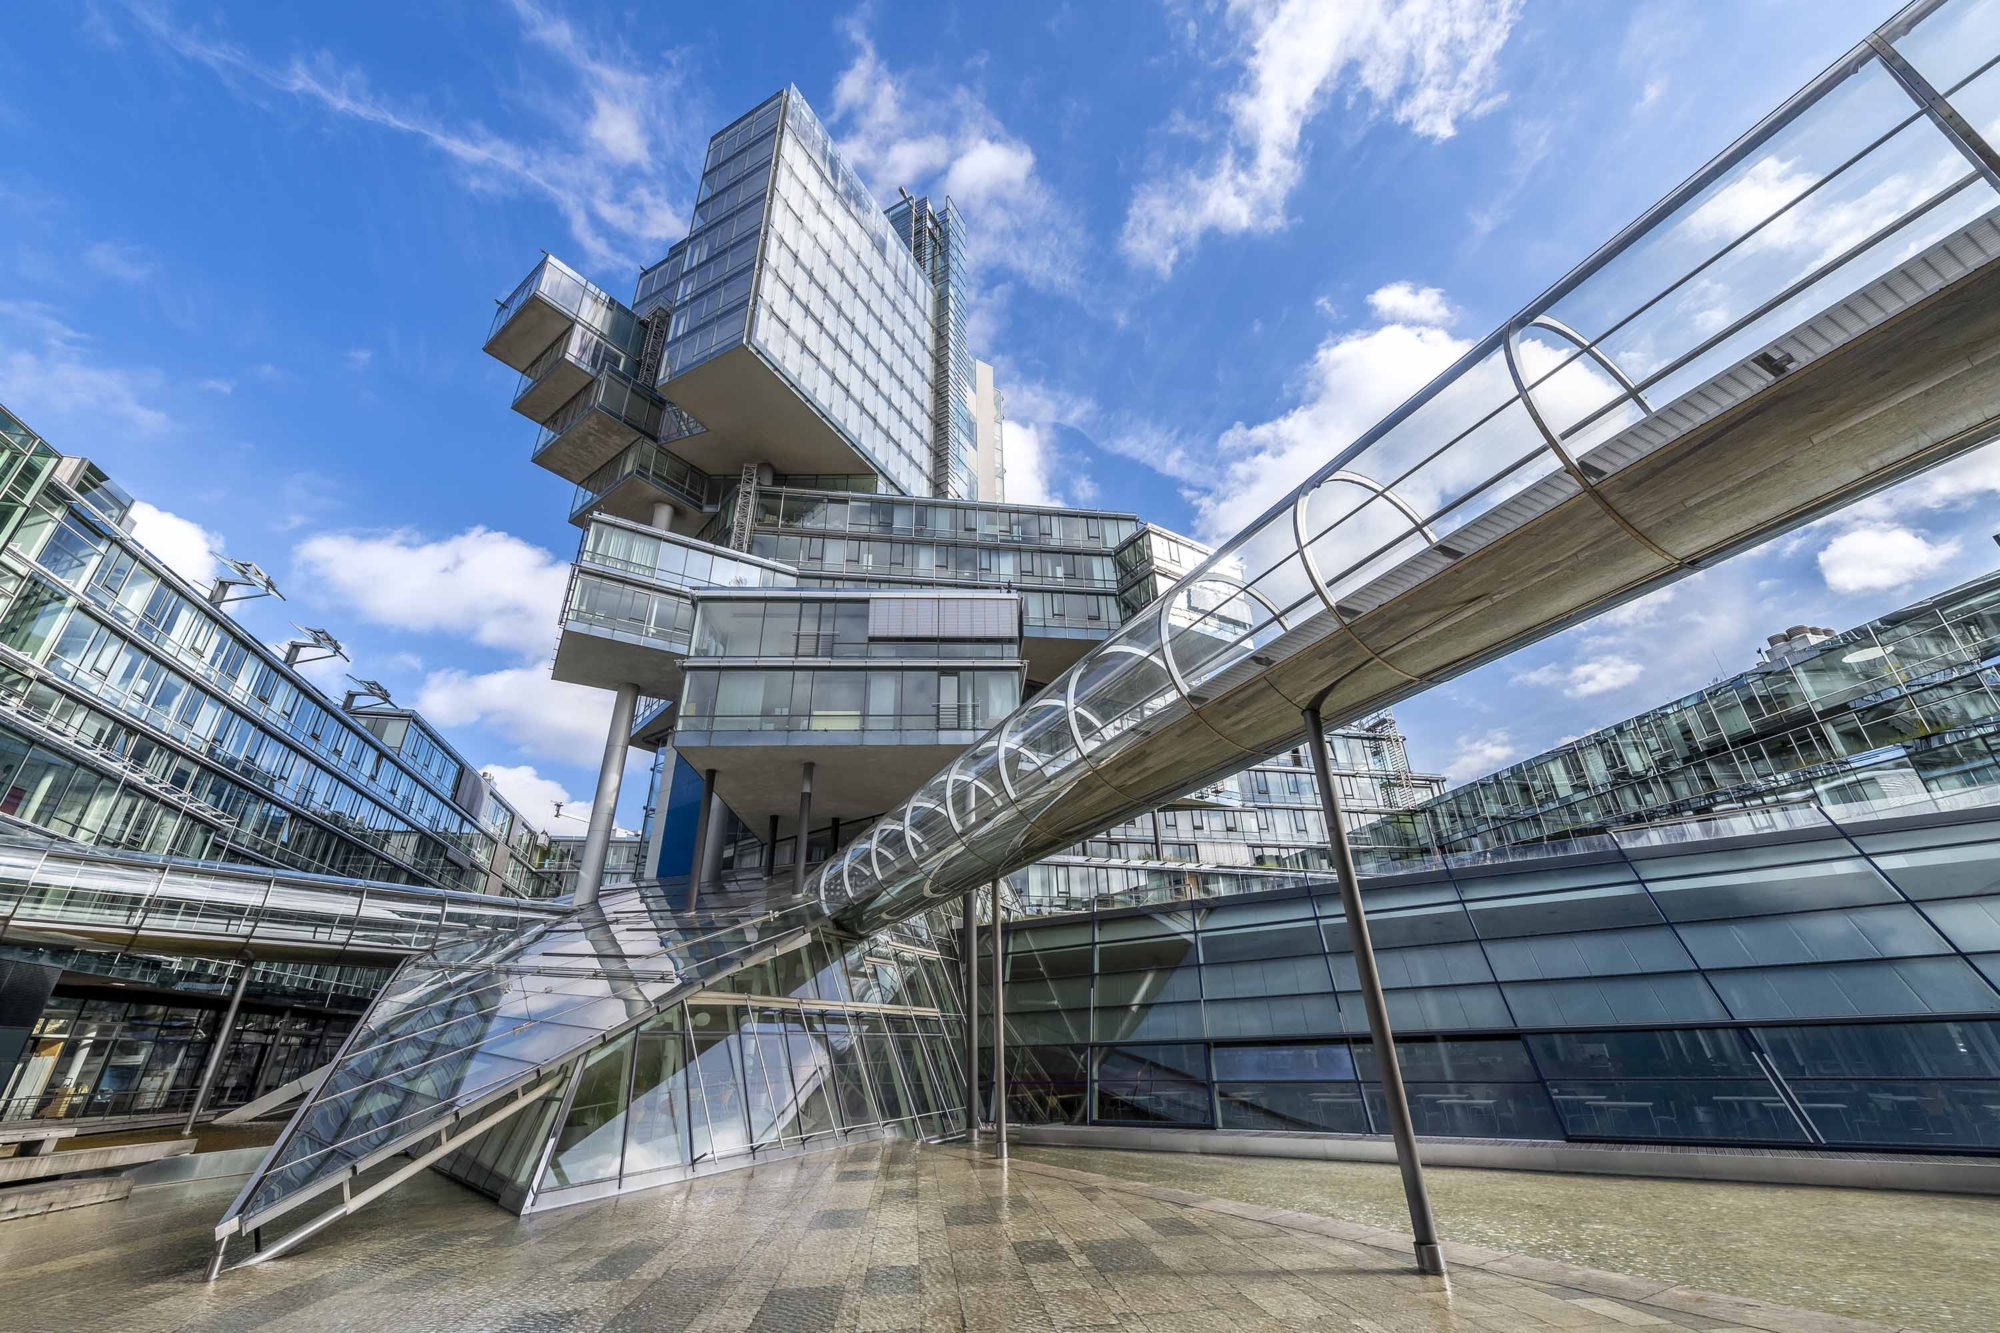 Deconstructivist building of the German Bank Nord:LB in Hannover, Germany 200929wc859775